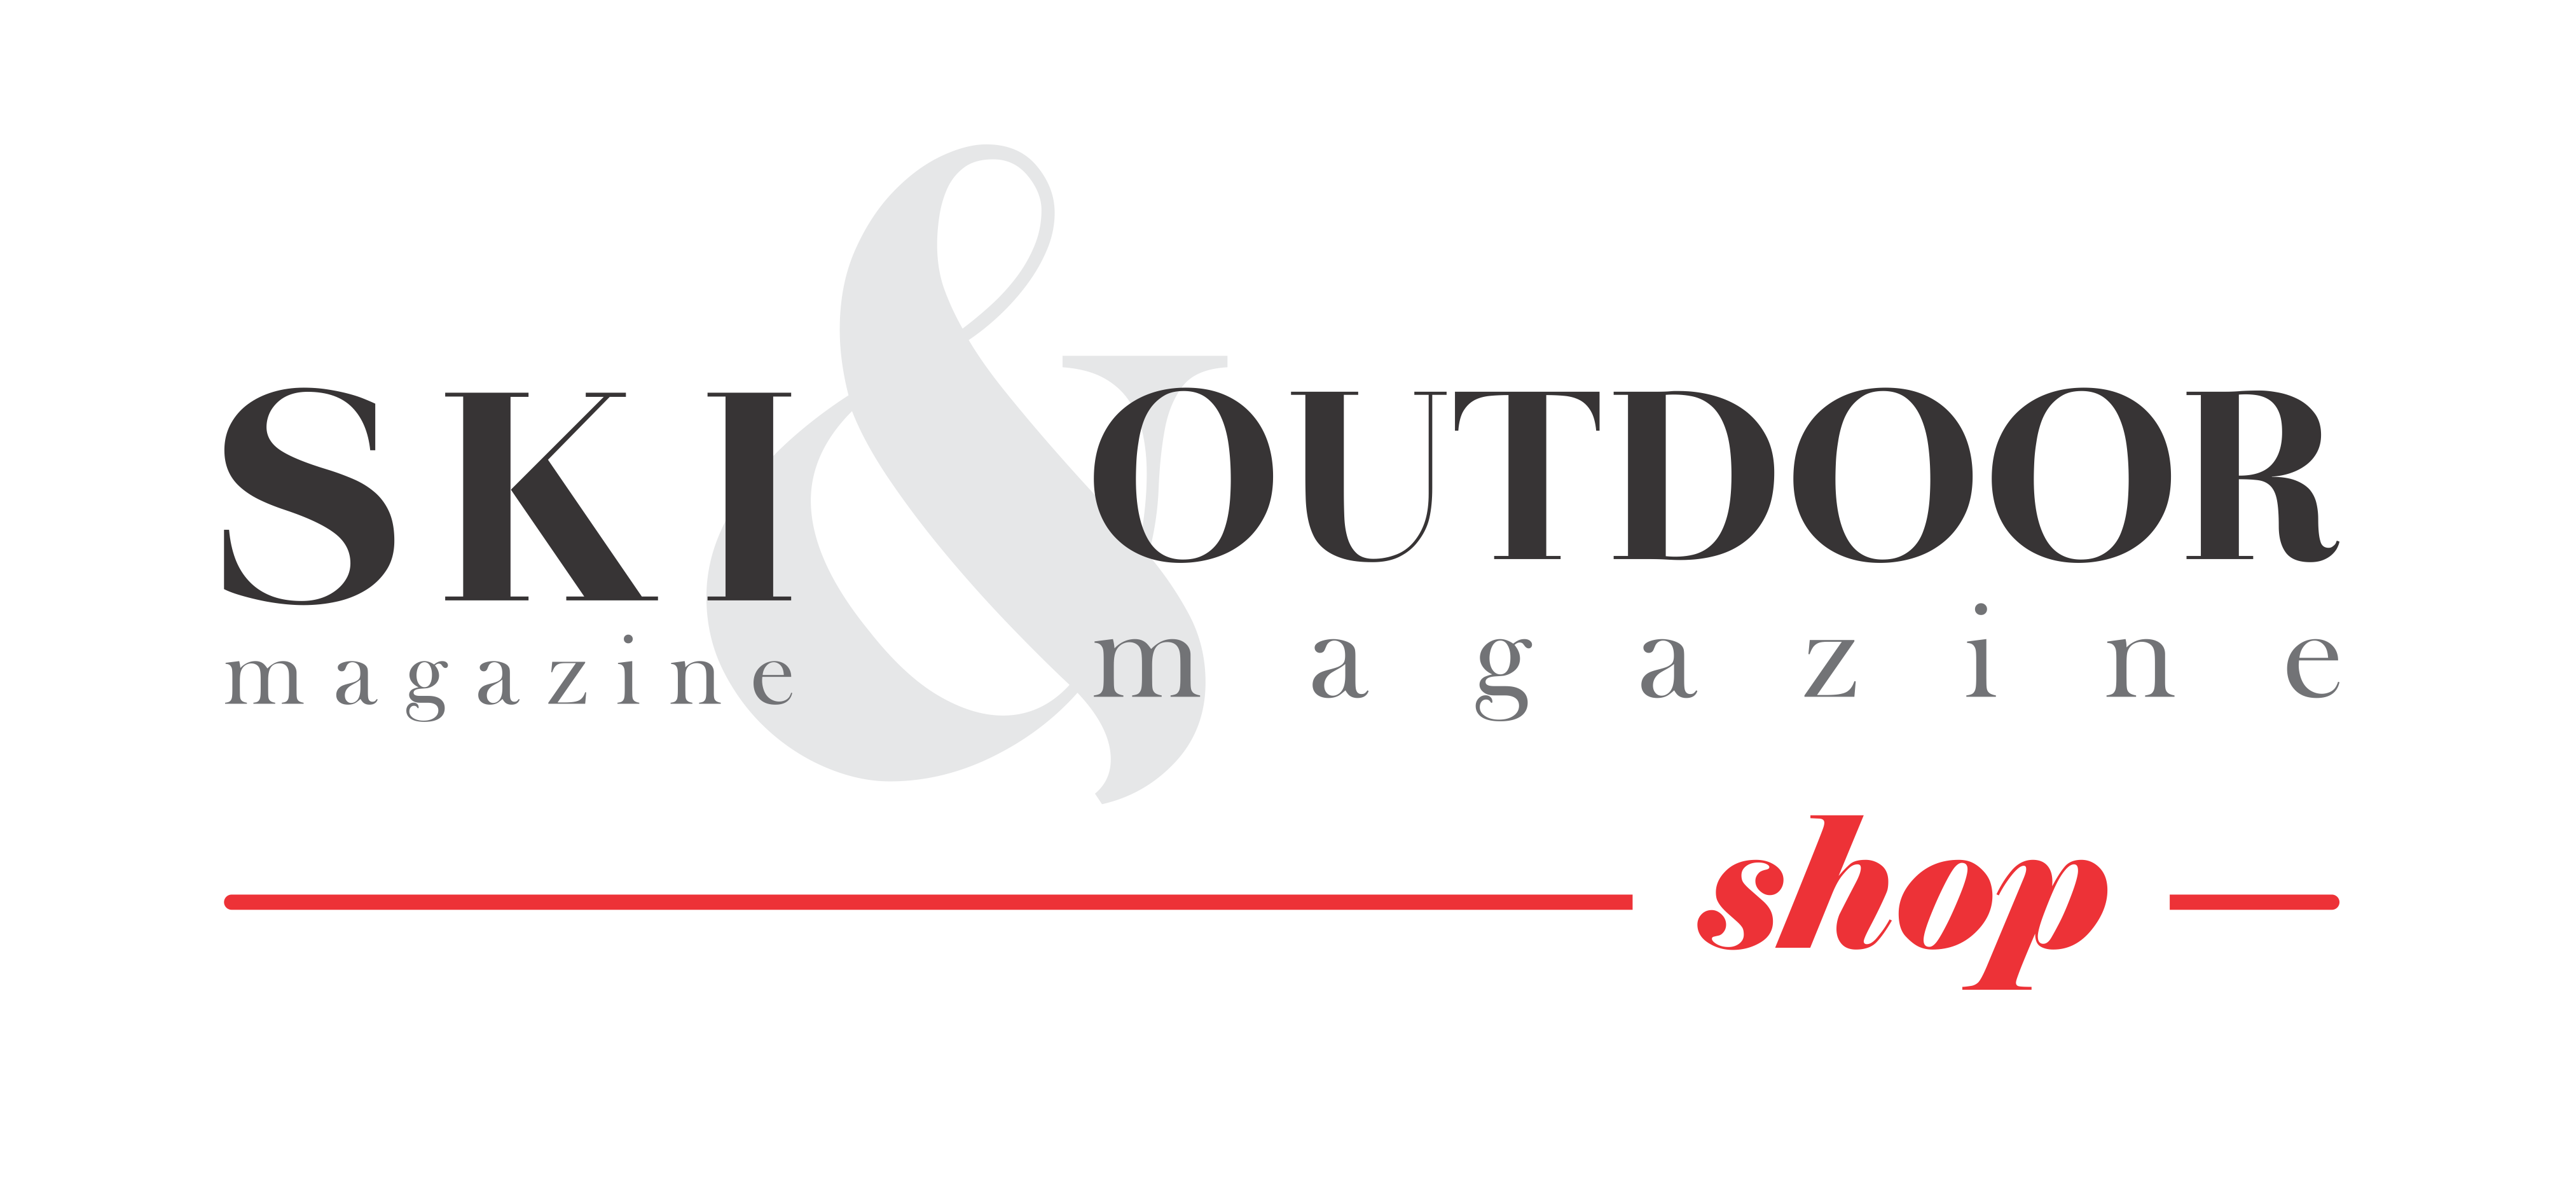 Ski & Outdoor Shop -